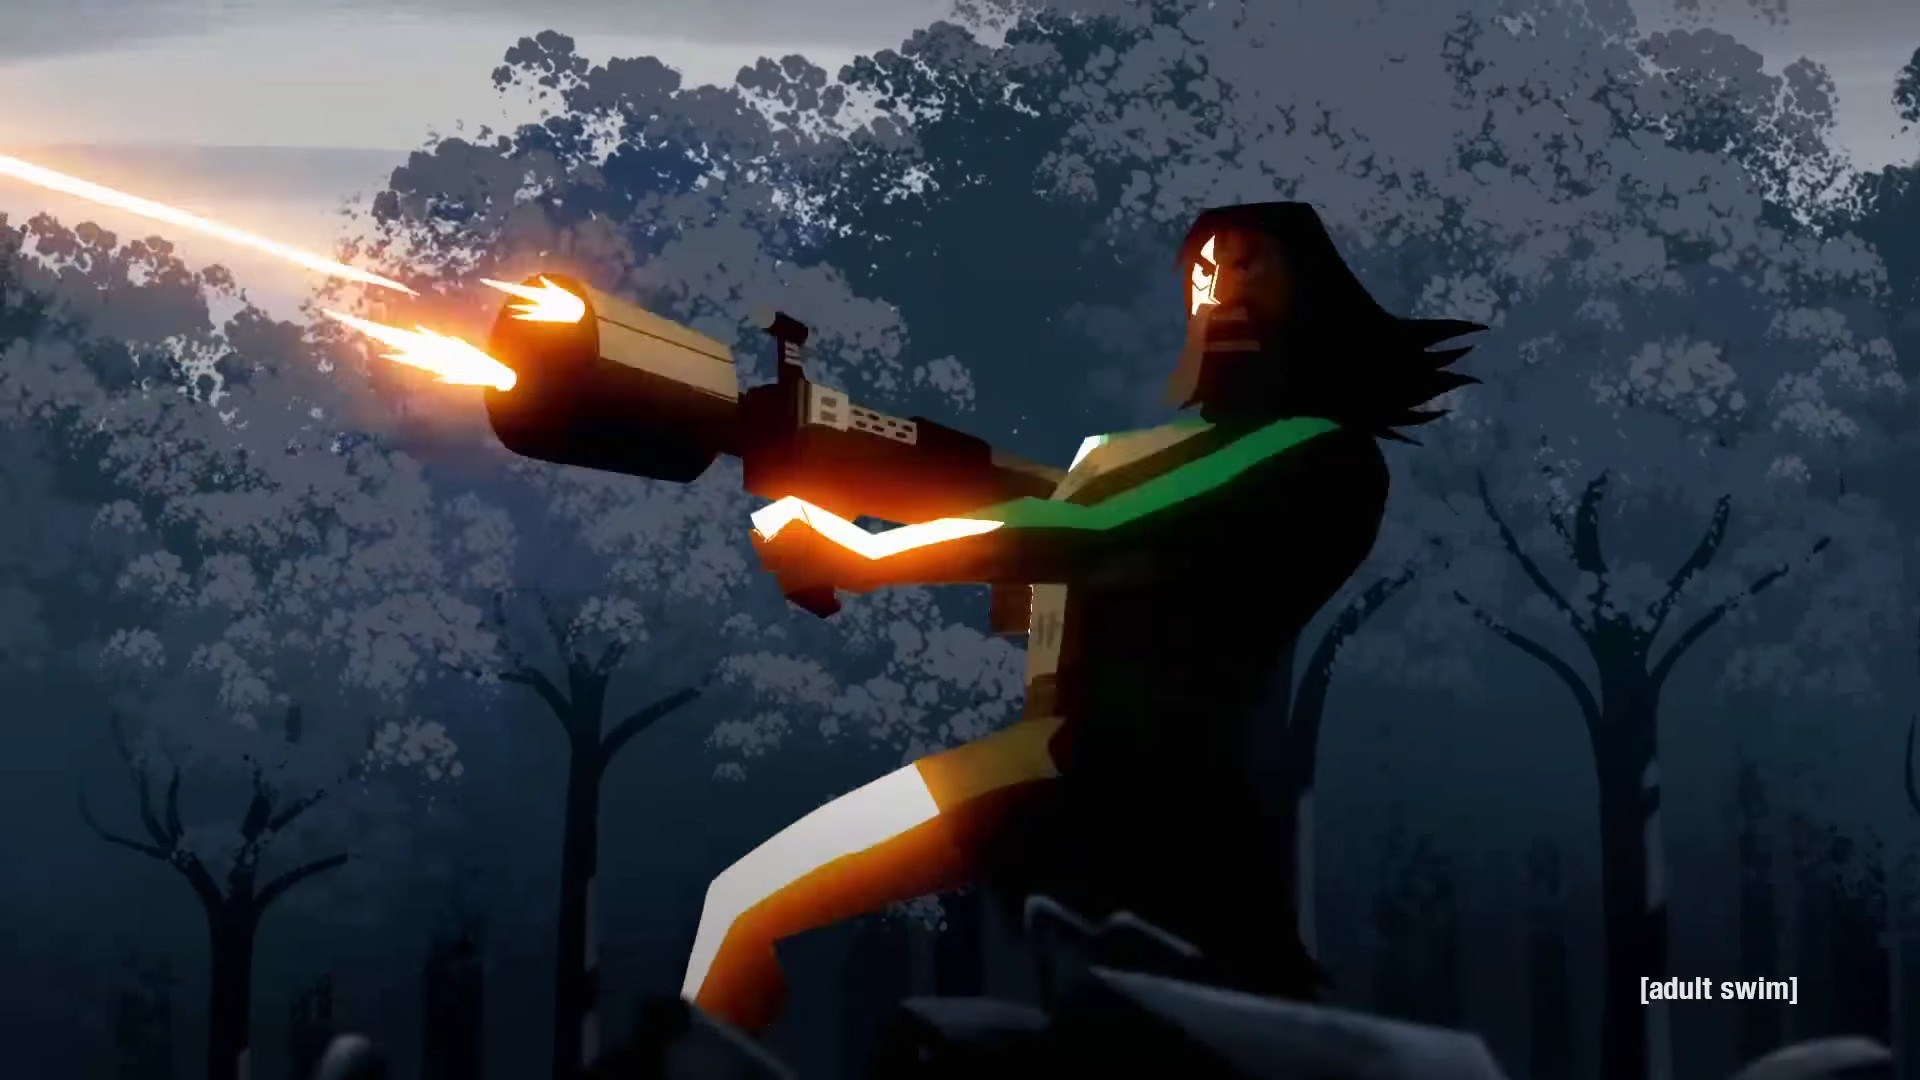 Star Wars Dual Monitor Wallpaper Group Pictures Samurai Jack S5 Gif 55973 Hd Wallpaper Backgrounds Download